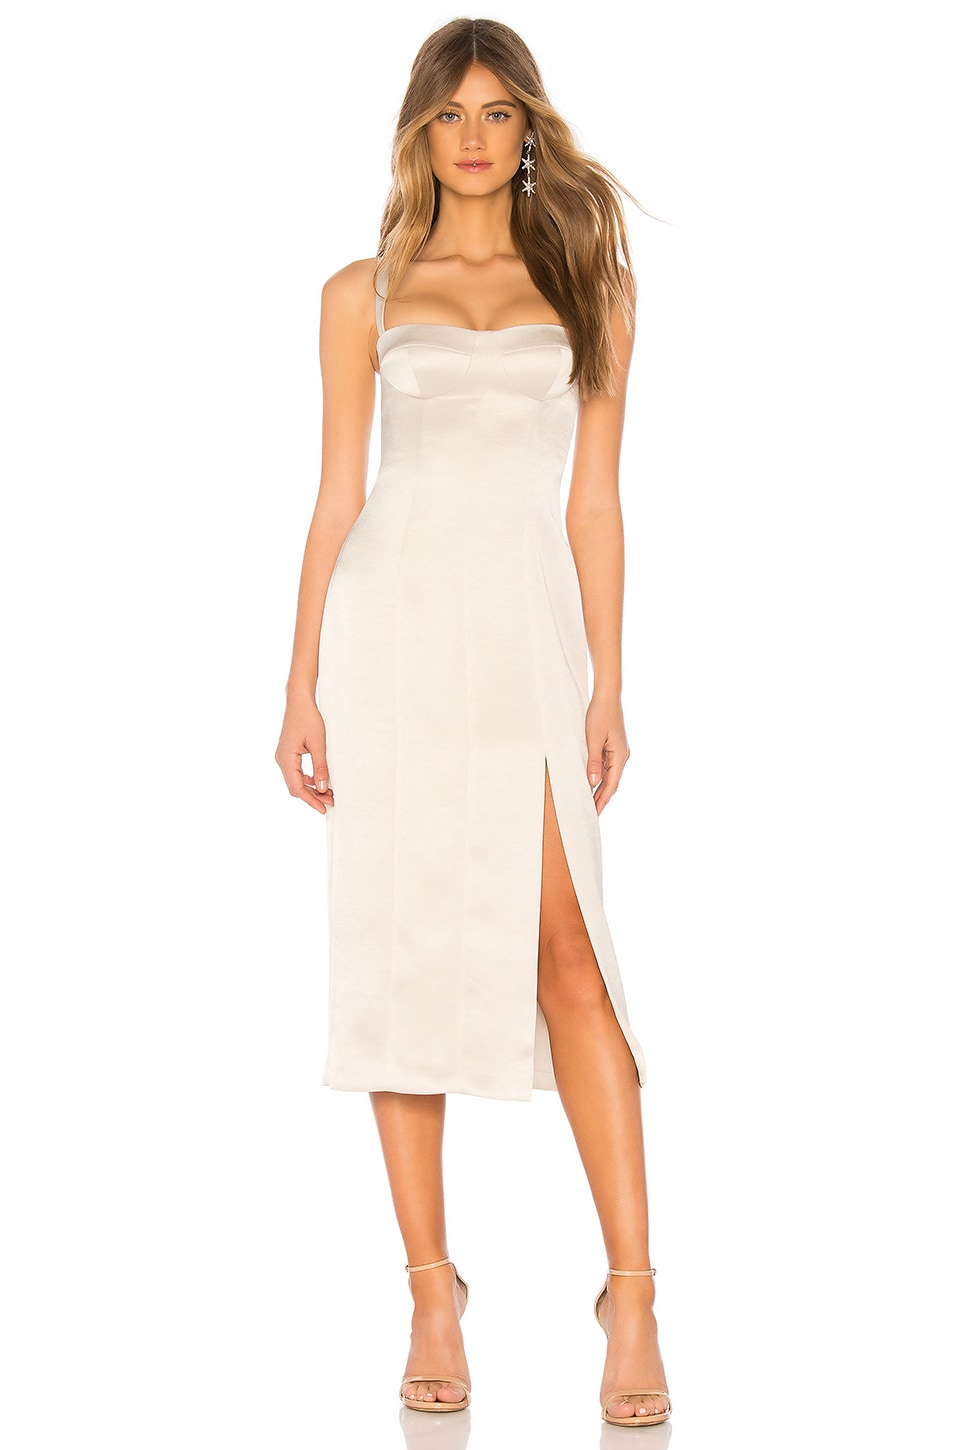 Alexis Yates Midi Dress in Alabaster